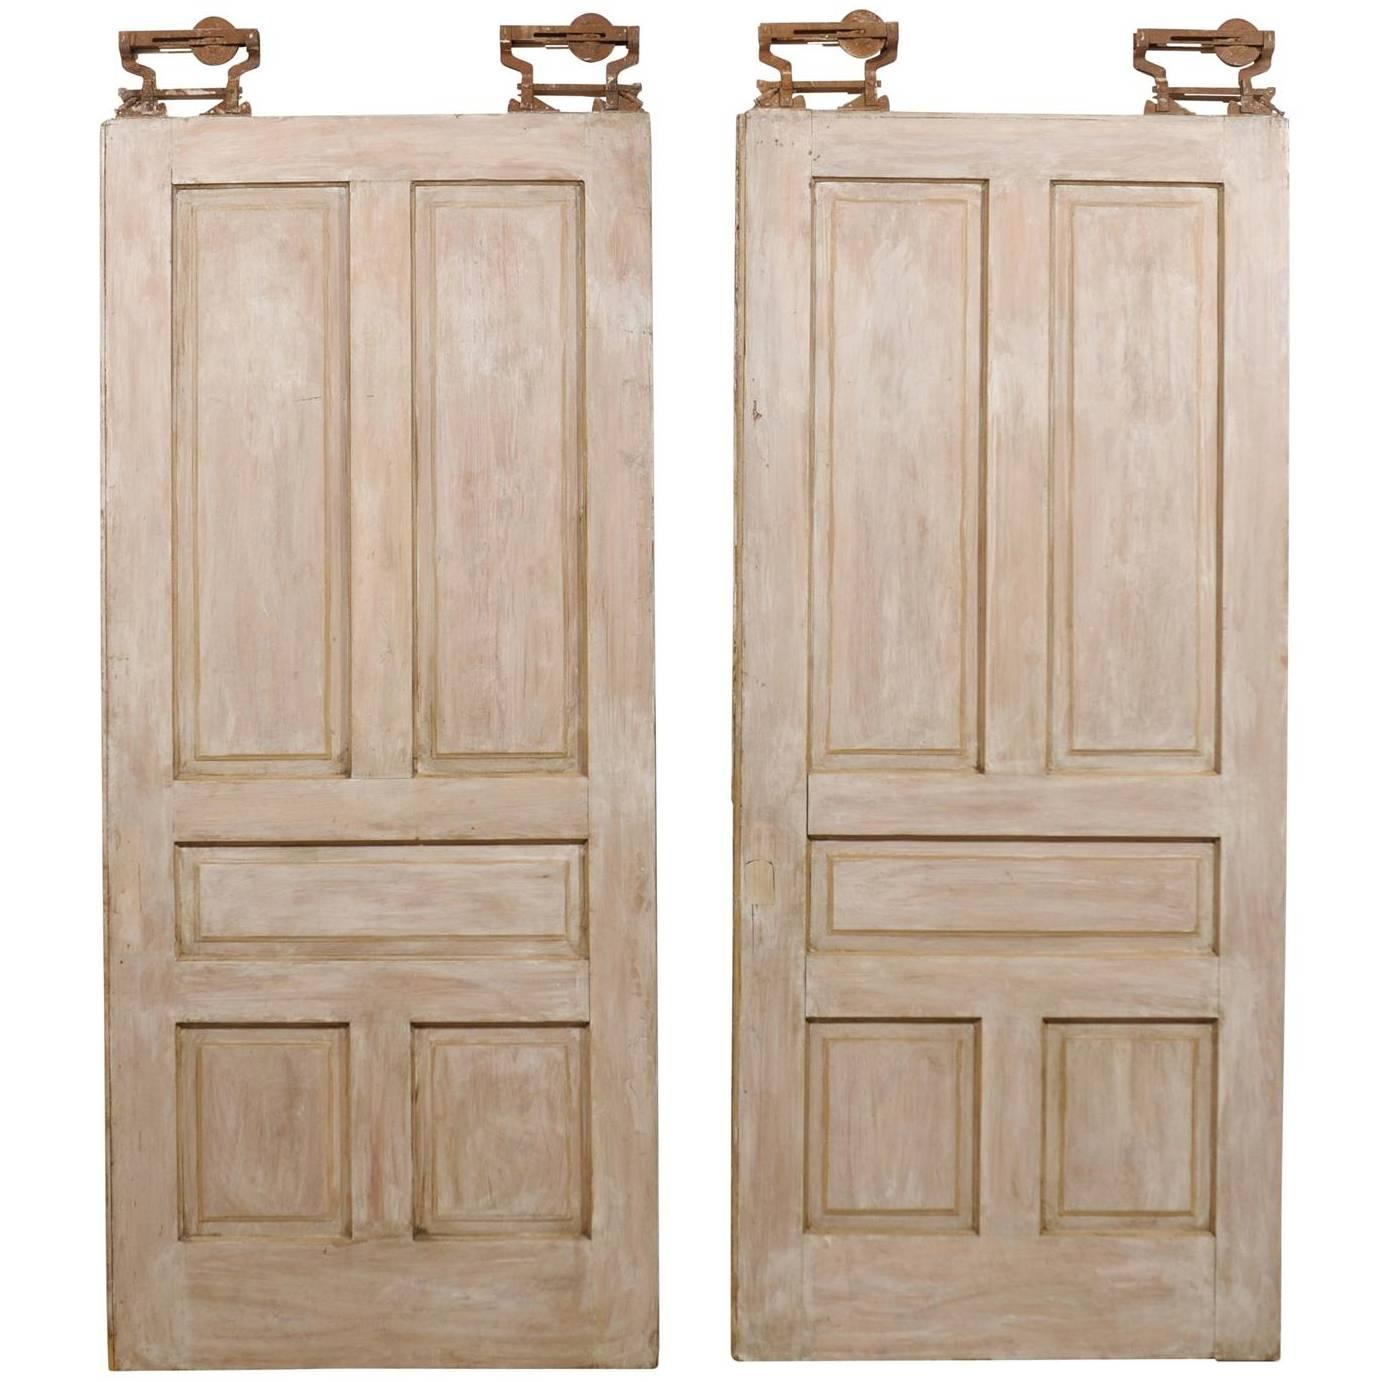 Pair of Early 20th C. Painted Wood 5-Panel Pocket Doors, with Original Hardware